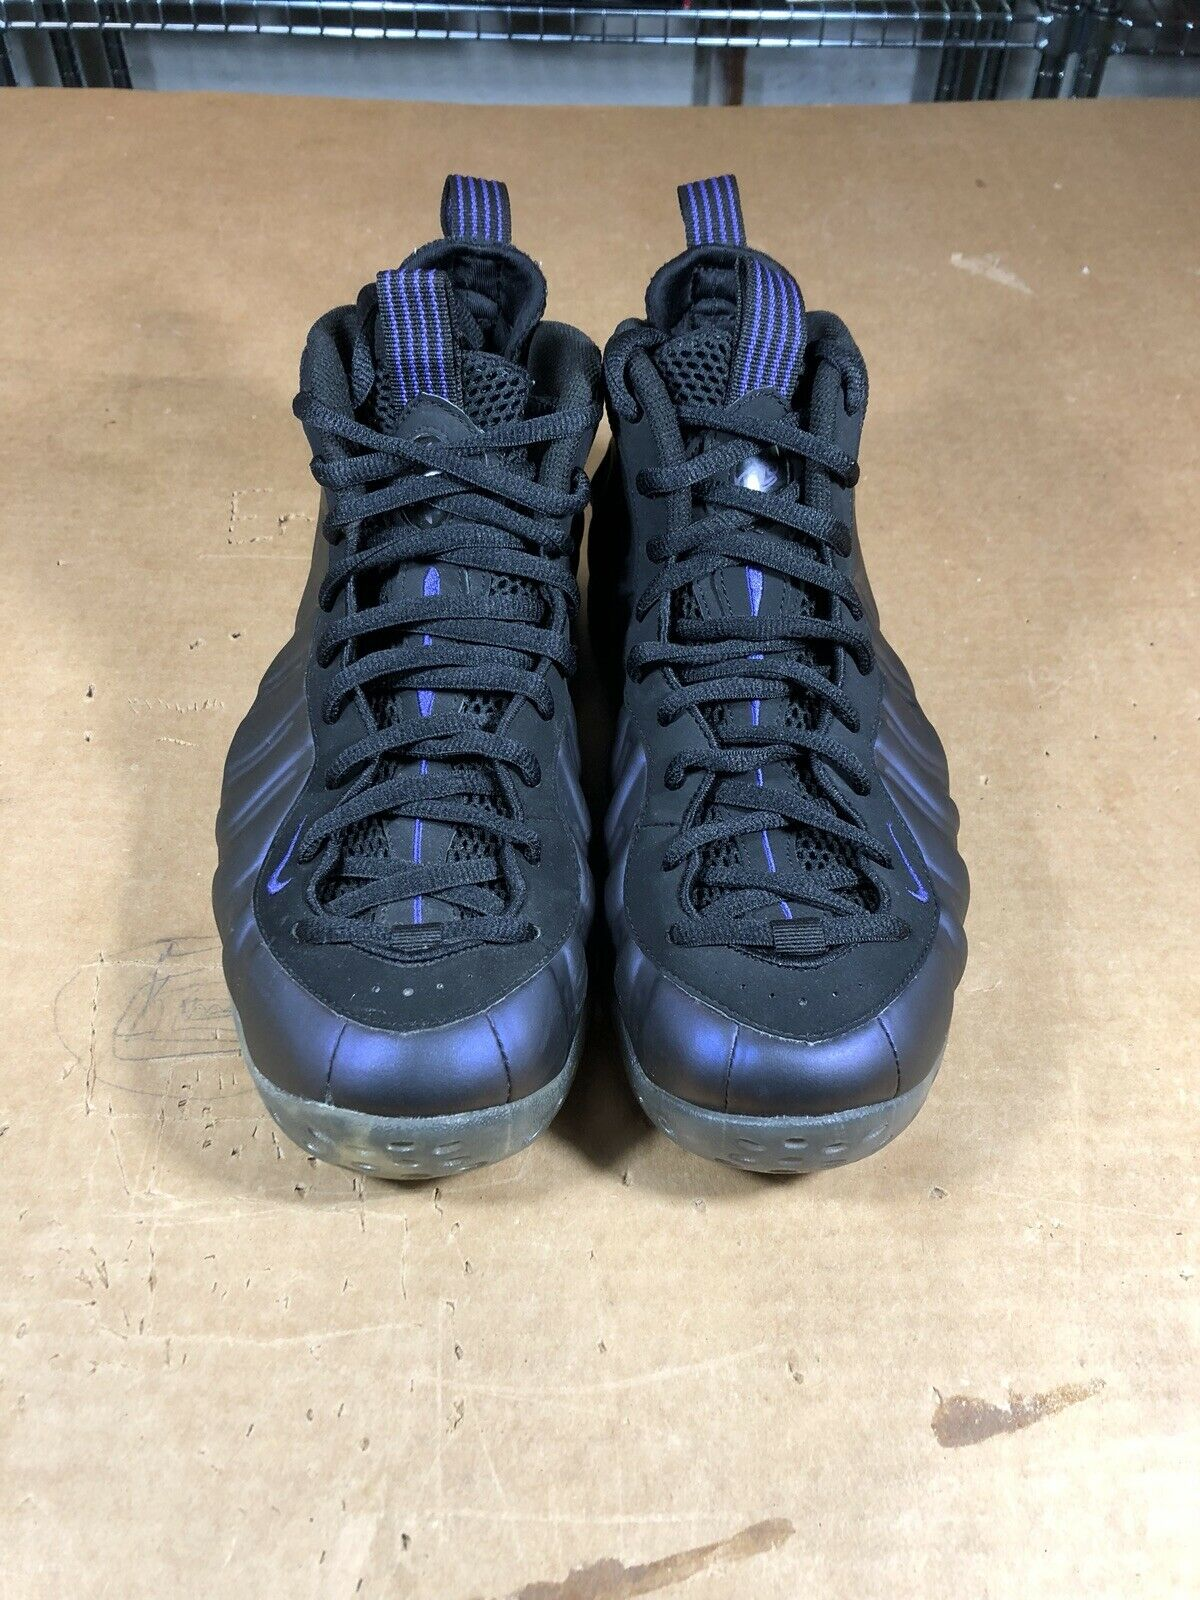 100% Authentic Nike Air Foamposite One Eggplant Size 9 314996 051